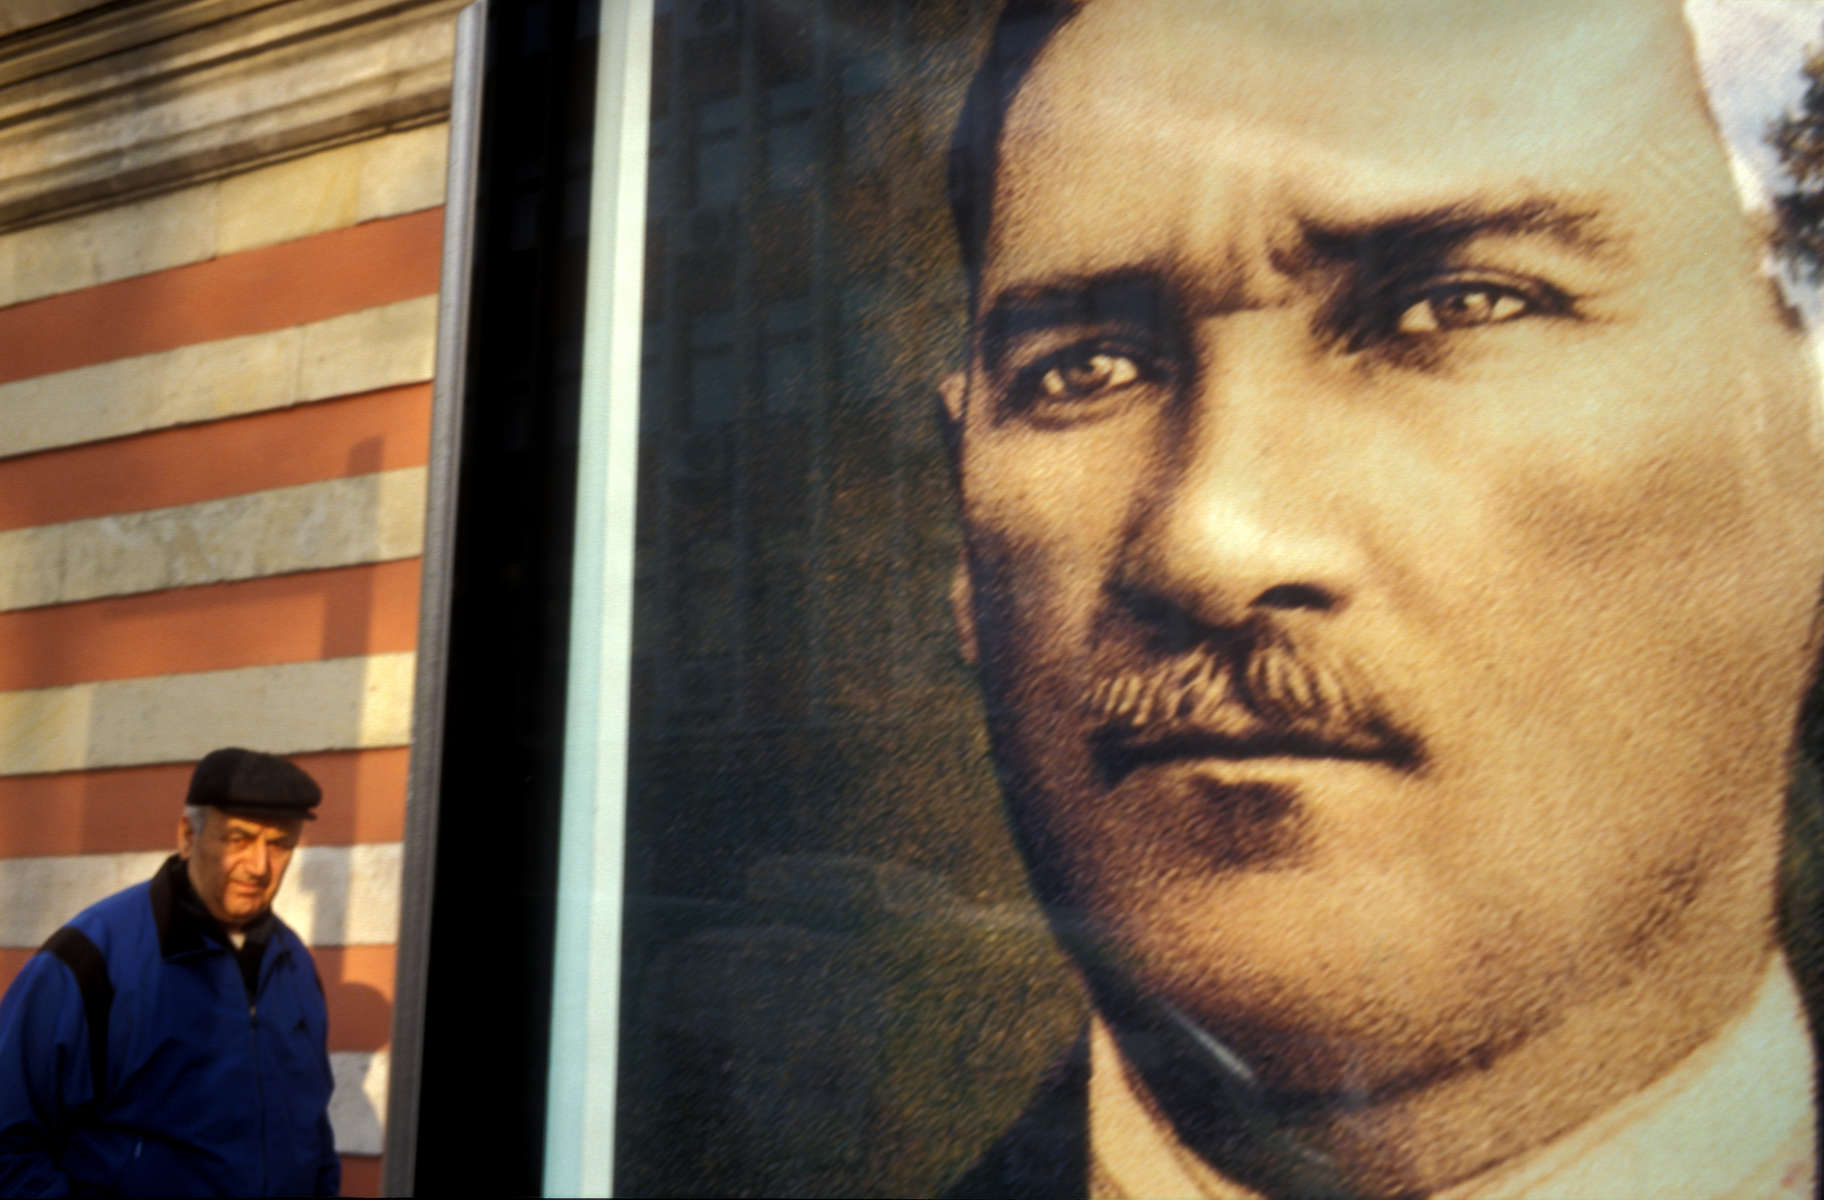 A pedestrian passes by one of the many portraits of Mustafa Kemal Ataturk which can be found all over Turkey, from offices and schools, to theatres and museums. Although he died in 1938, Turks still revere the man who led them in their war of independence from 1920 to 1922 and became the founder of the Turkish Republic in 1923. Turkish nationalism -- along with its growing Islamic conservatism -- concern many Europeans who worry that such attitudes will be at odds with the European Union\'s efforts to create a united body of nations. In Decmeber, 2004, the EU agreed that accession talks for Turkey\'s entry into the union will begin in October 2005 and could last as long as a decade.